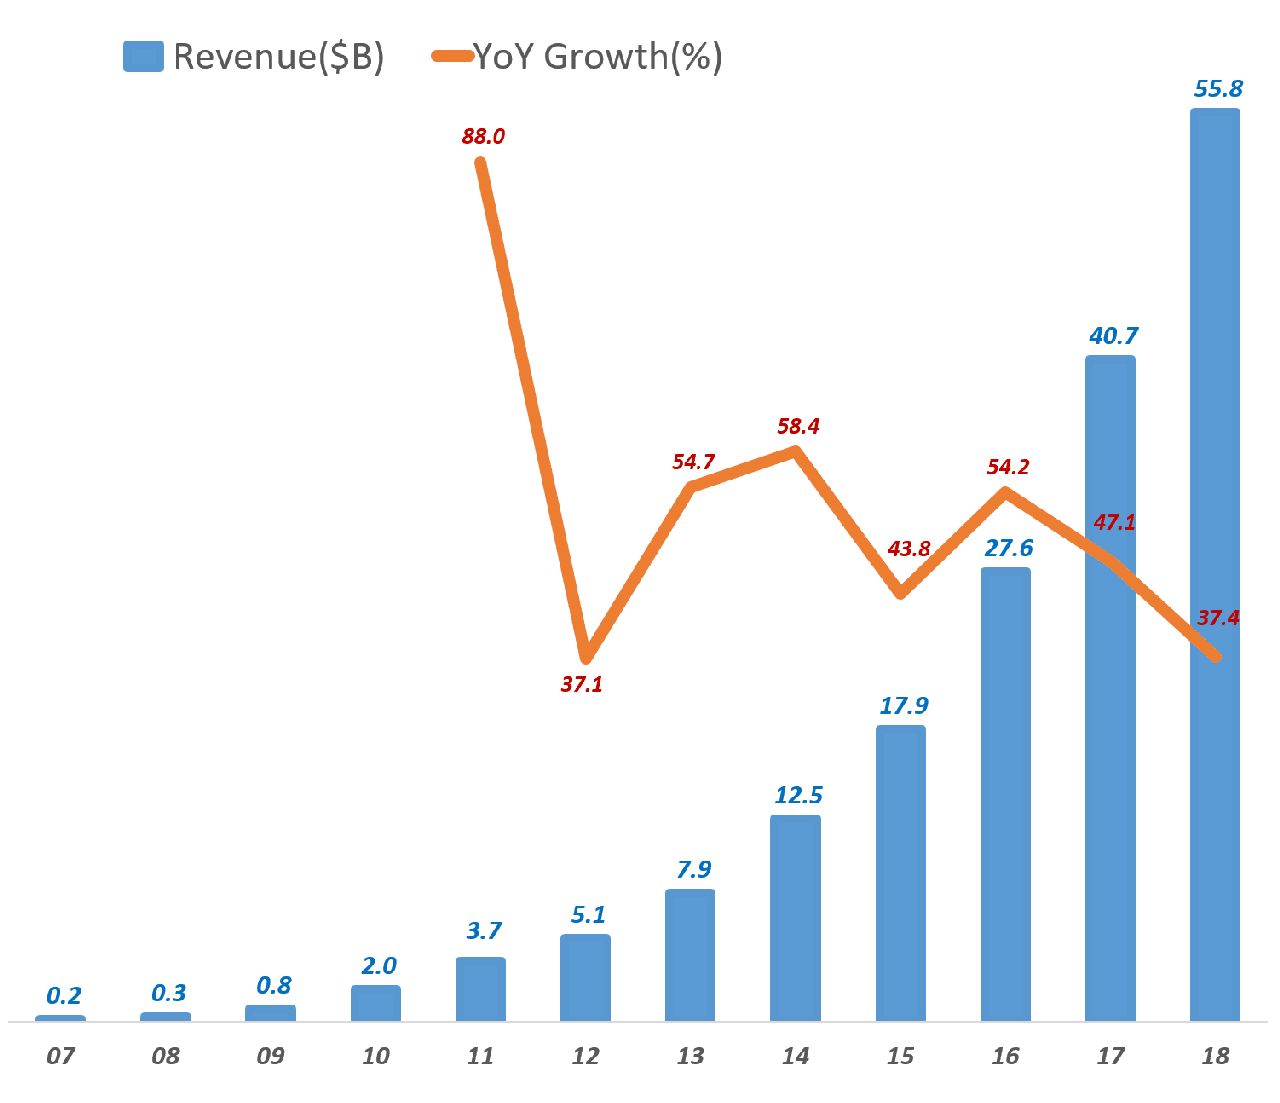 페이스북 연도별 매출 추이(2007년 ~ 2018년), Facebook yearly Revenue trend, Data - invest.fb.com, Graph by Happist